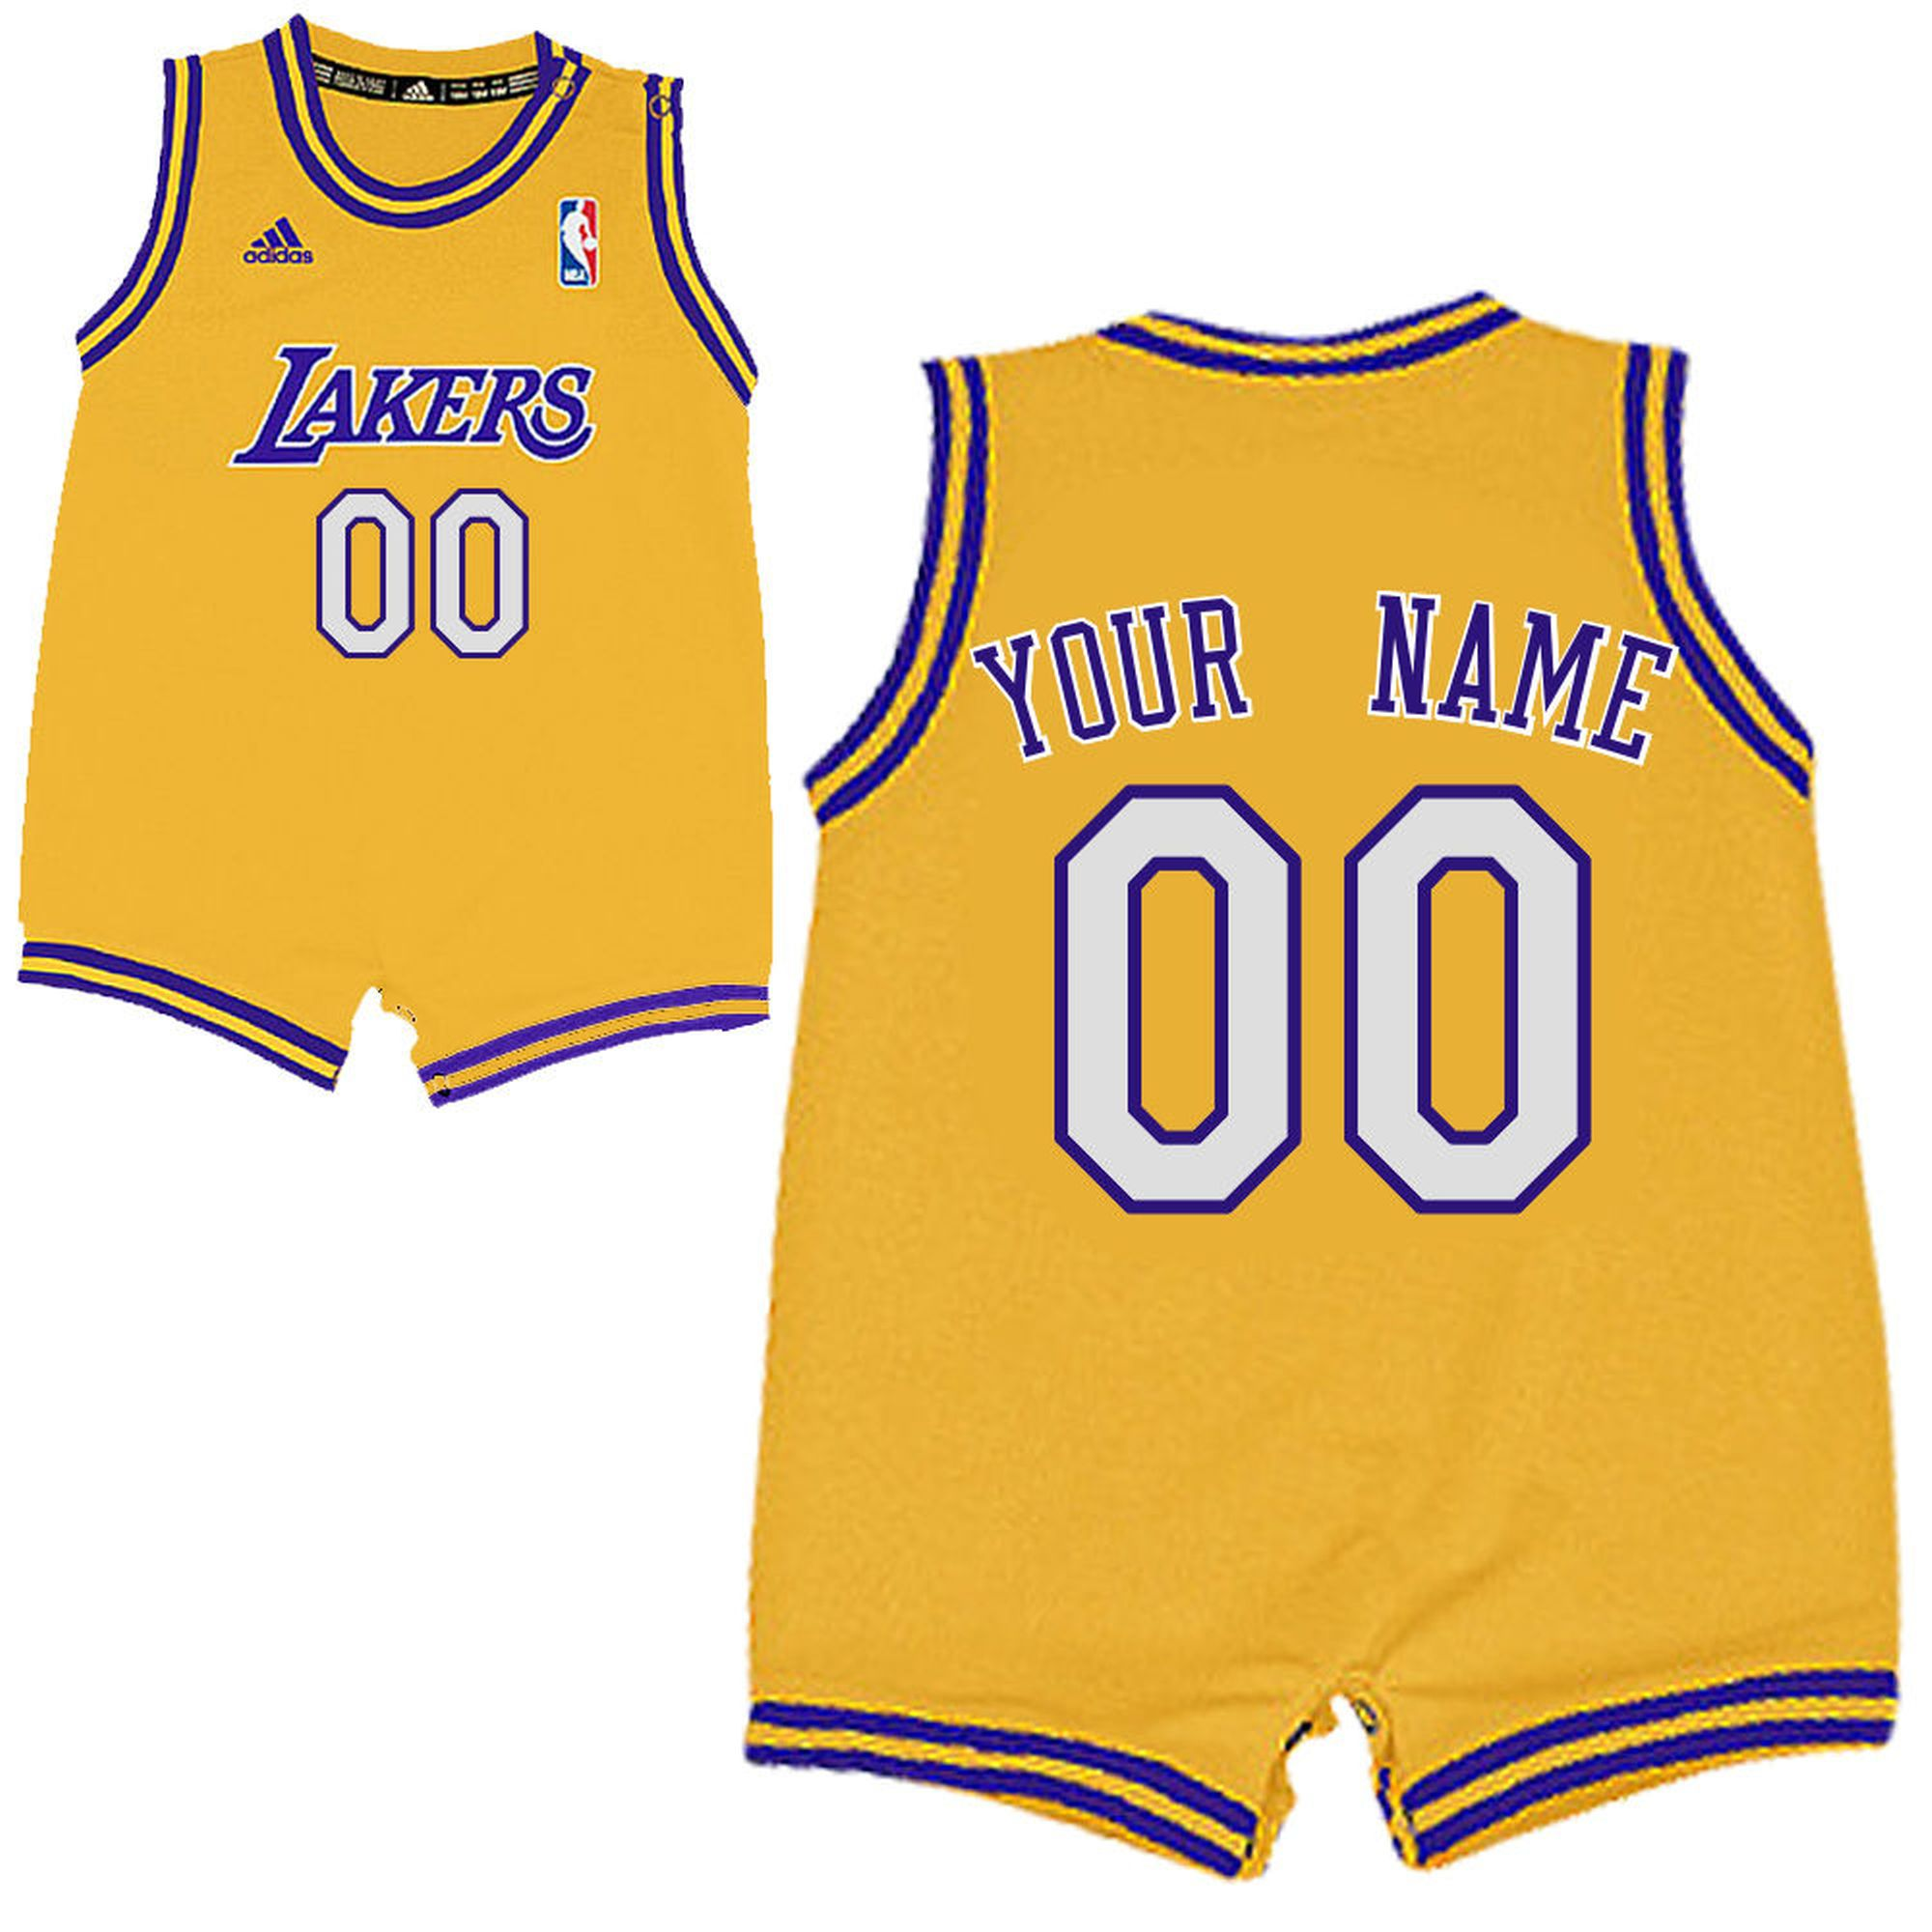 Adidas La Lakers Infant Custom Replica Home Jersey Basketball Jersey Outfit Lakers Outfit Baby Boy Basketball